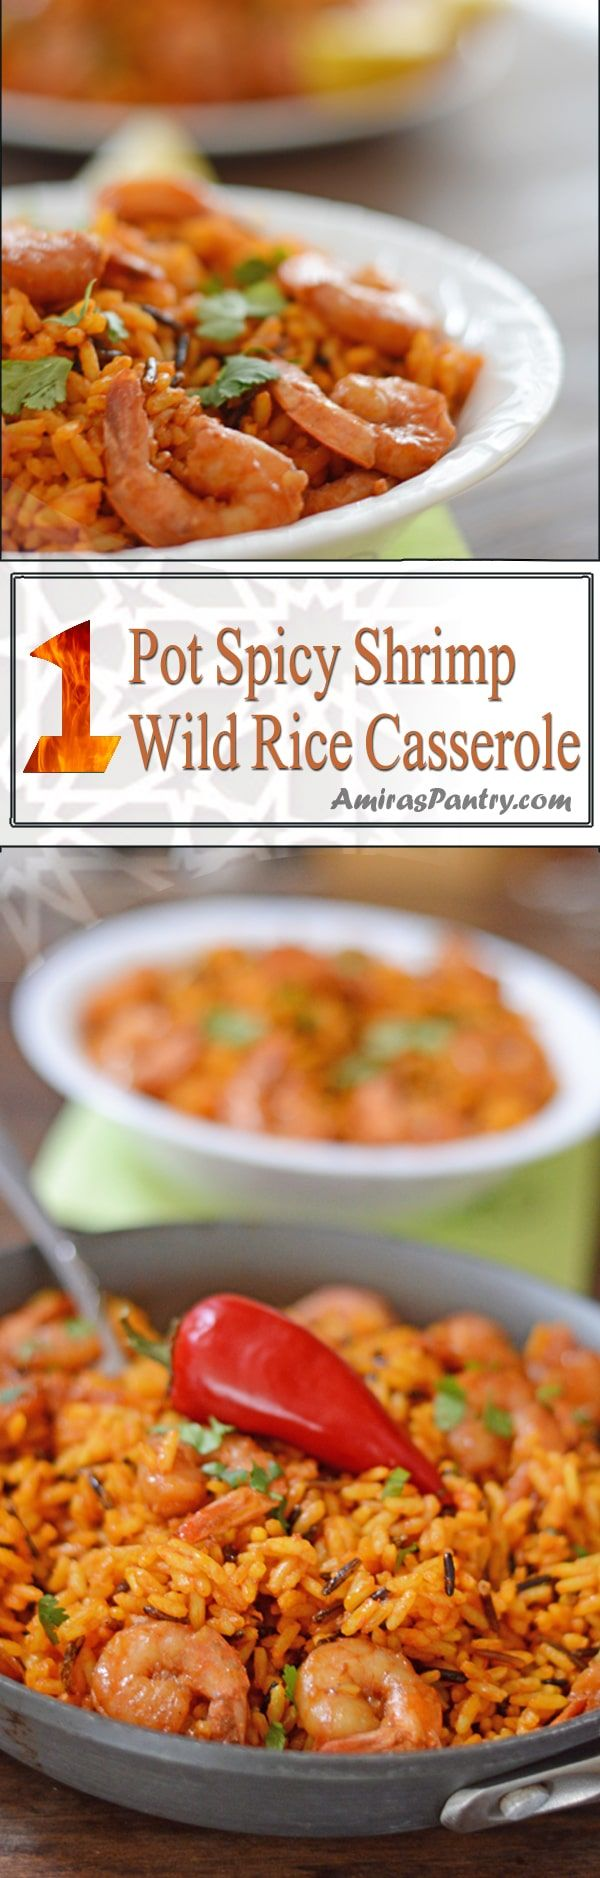 This is a one-pot family meal spicy wild rice shrimp recipe.Rich, delicious and a perfect 30 minutes dinner for busy weeknights.